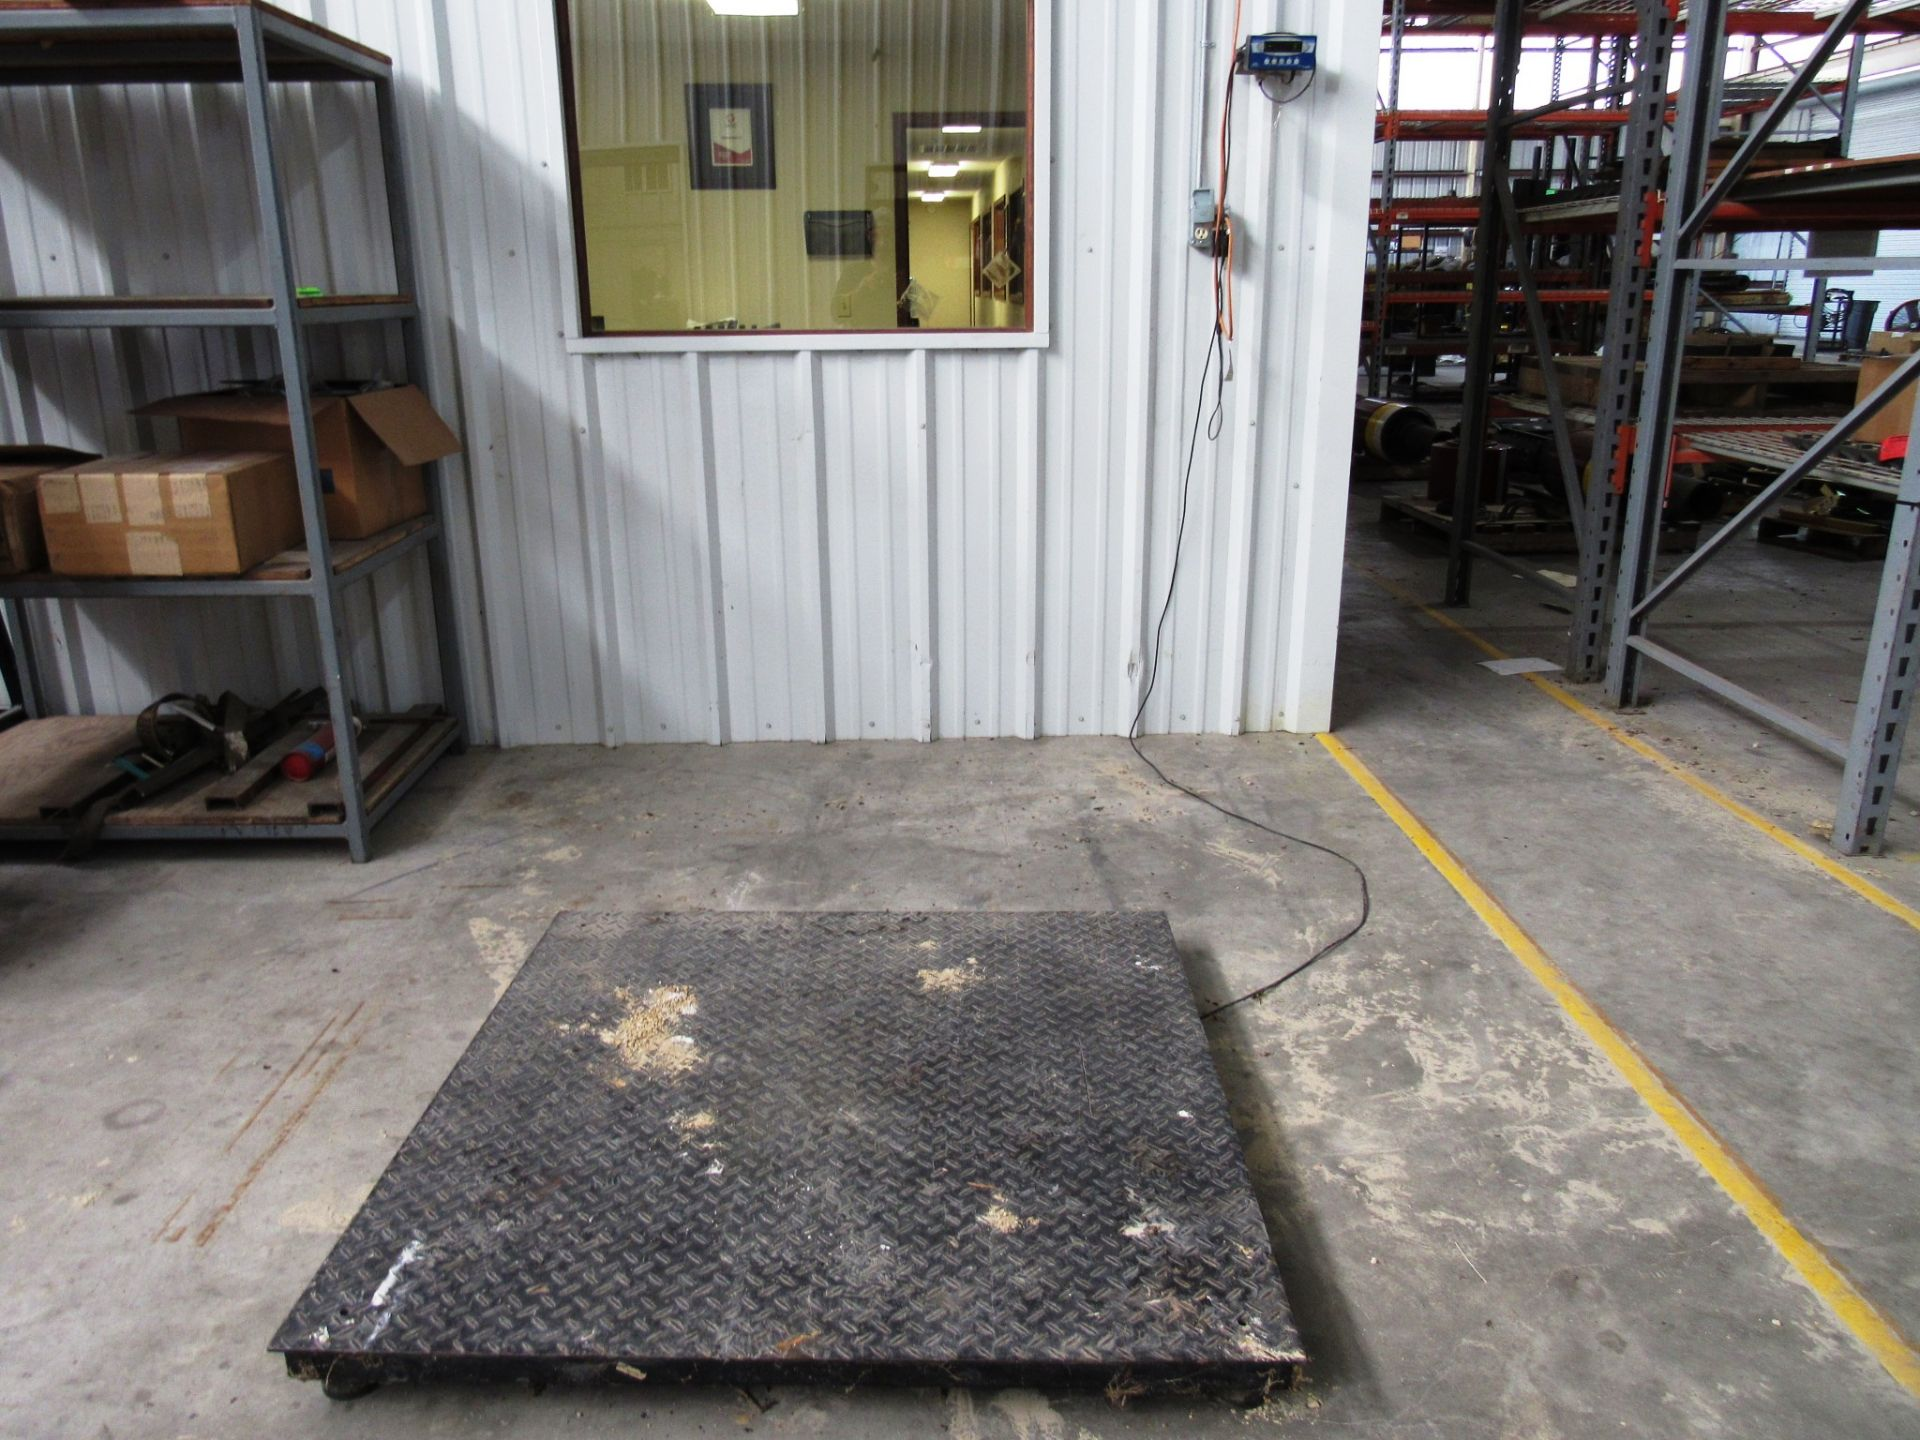 Lot 15 - 5,000lb Capacity Platform Scale with Trancell TI-500E Readout